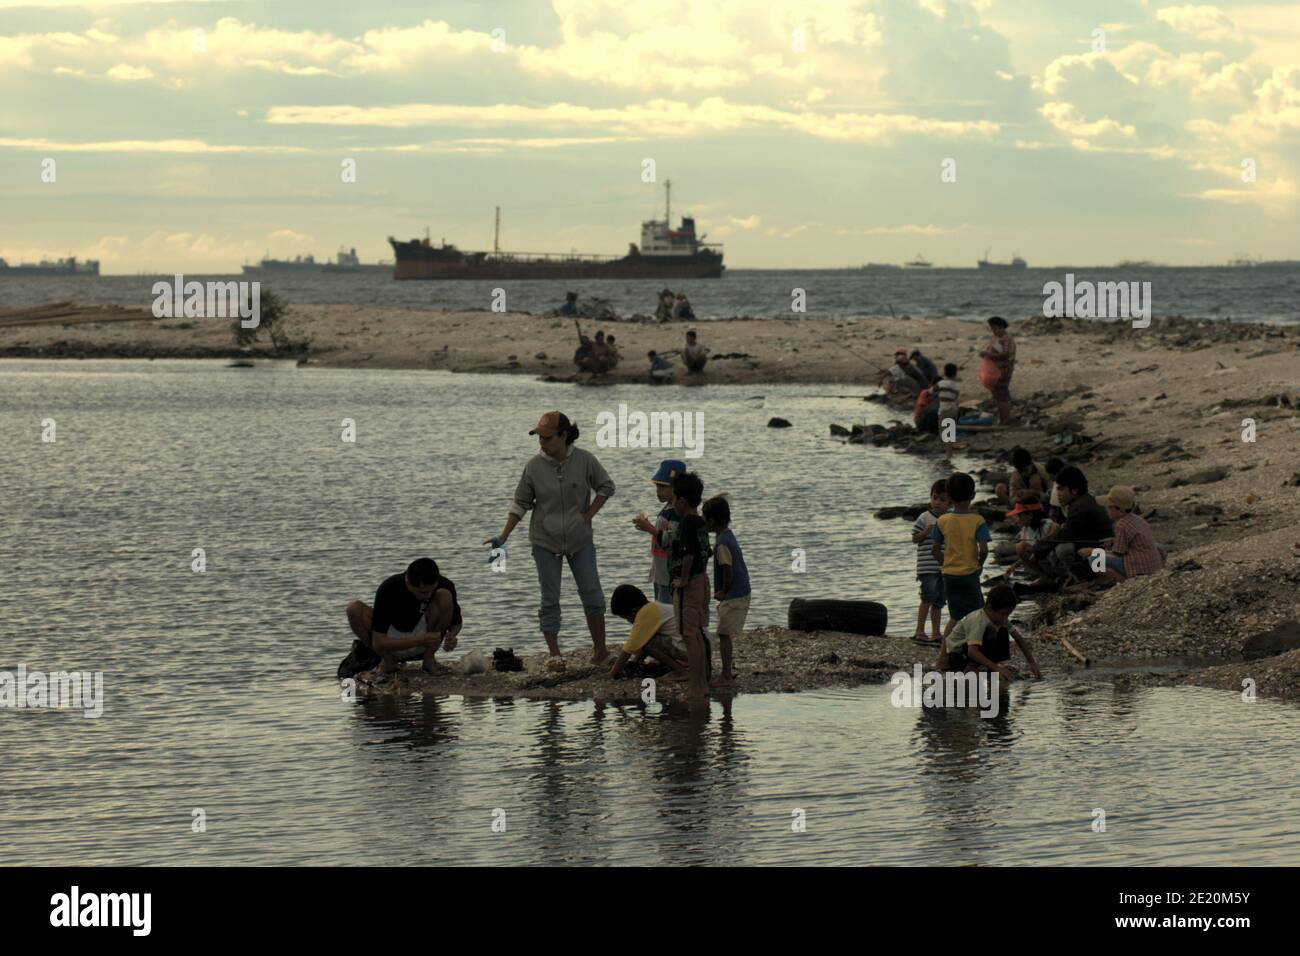 People having a recreational time on Cilincing beach in the coastal area of Jakarta, with a ship can be seen in the distance heading to the Port of Jakarta. Jakarta, Indonesia. Archival photo (2008). Stock Photo